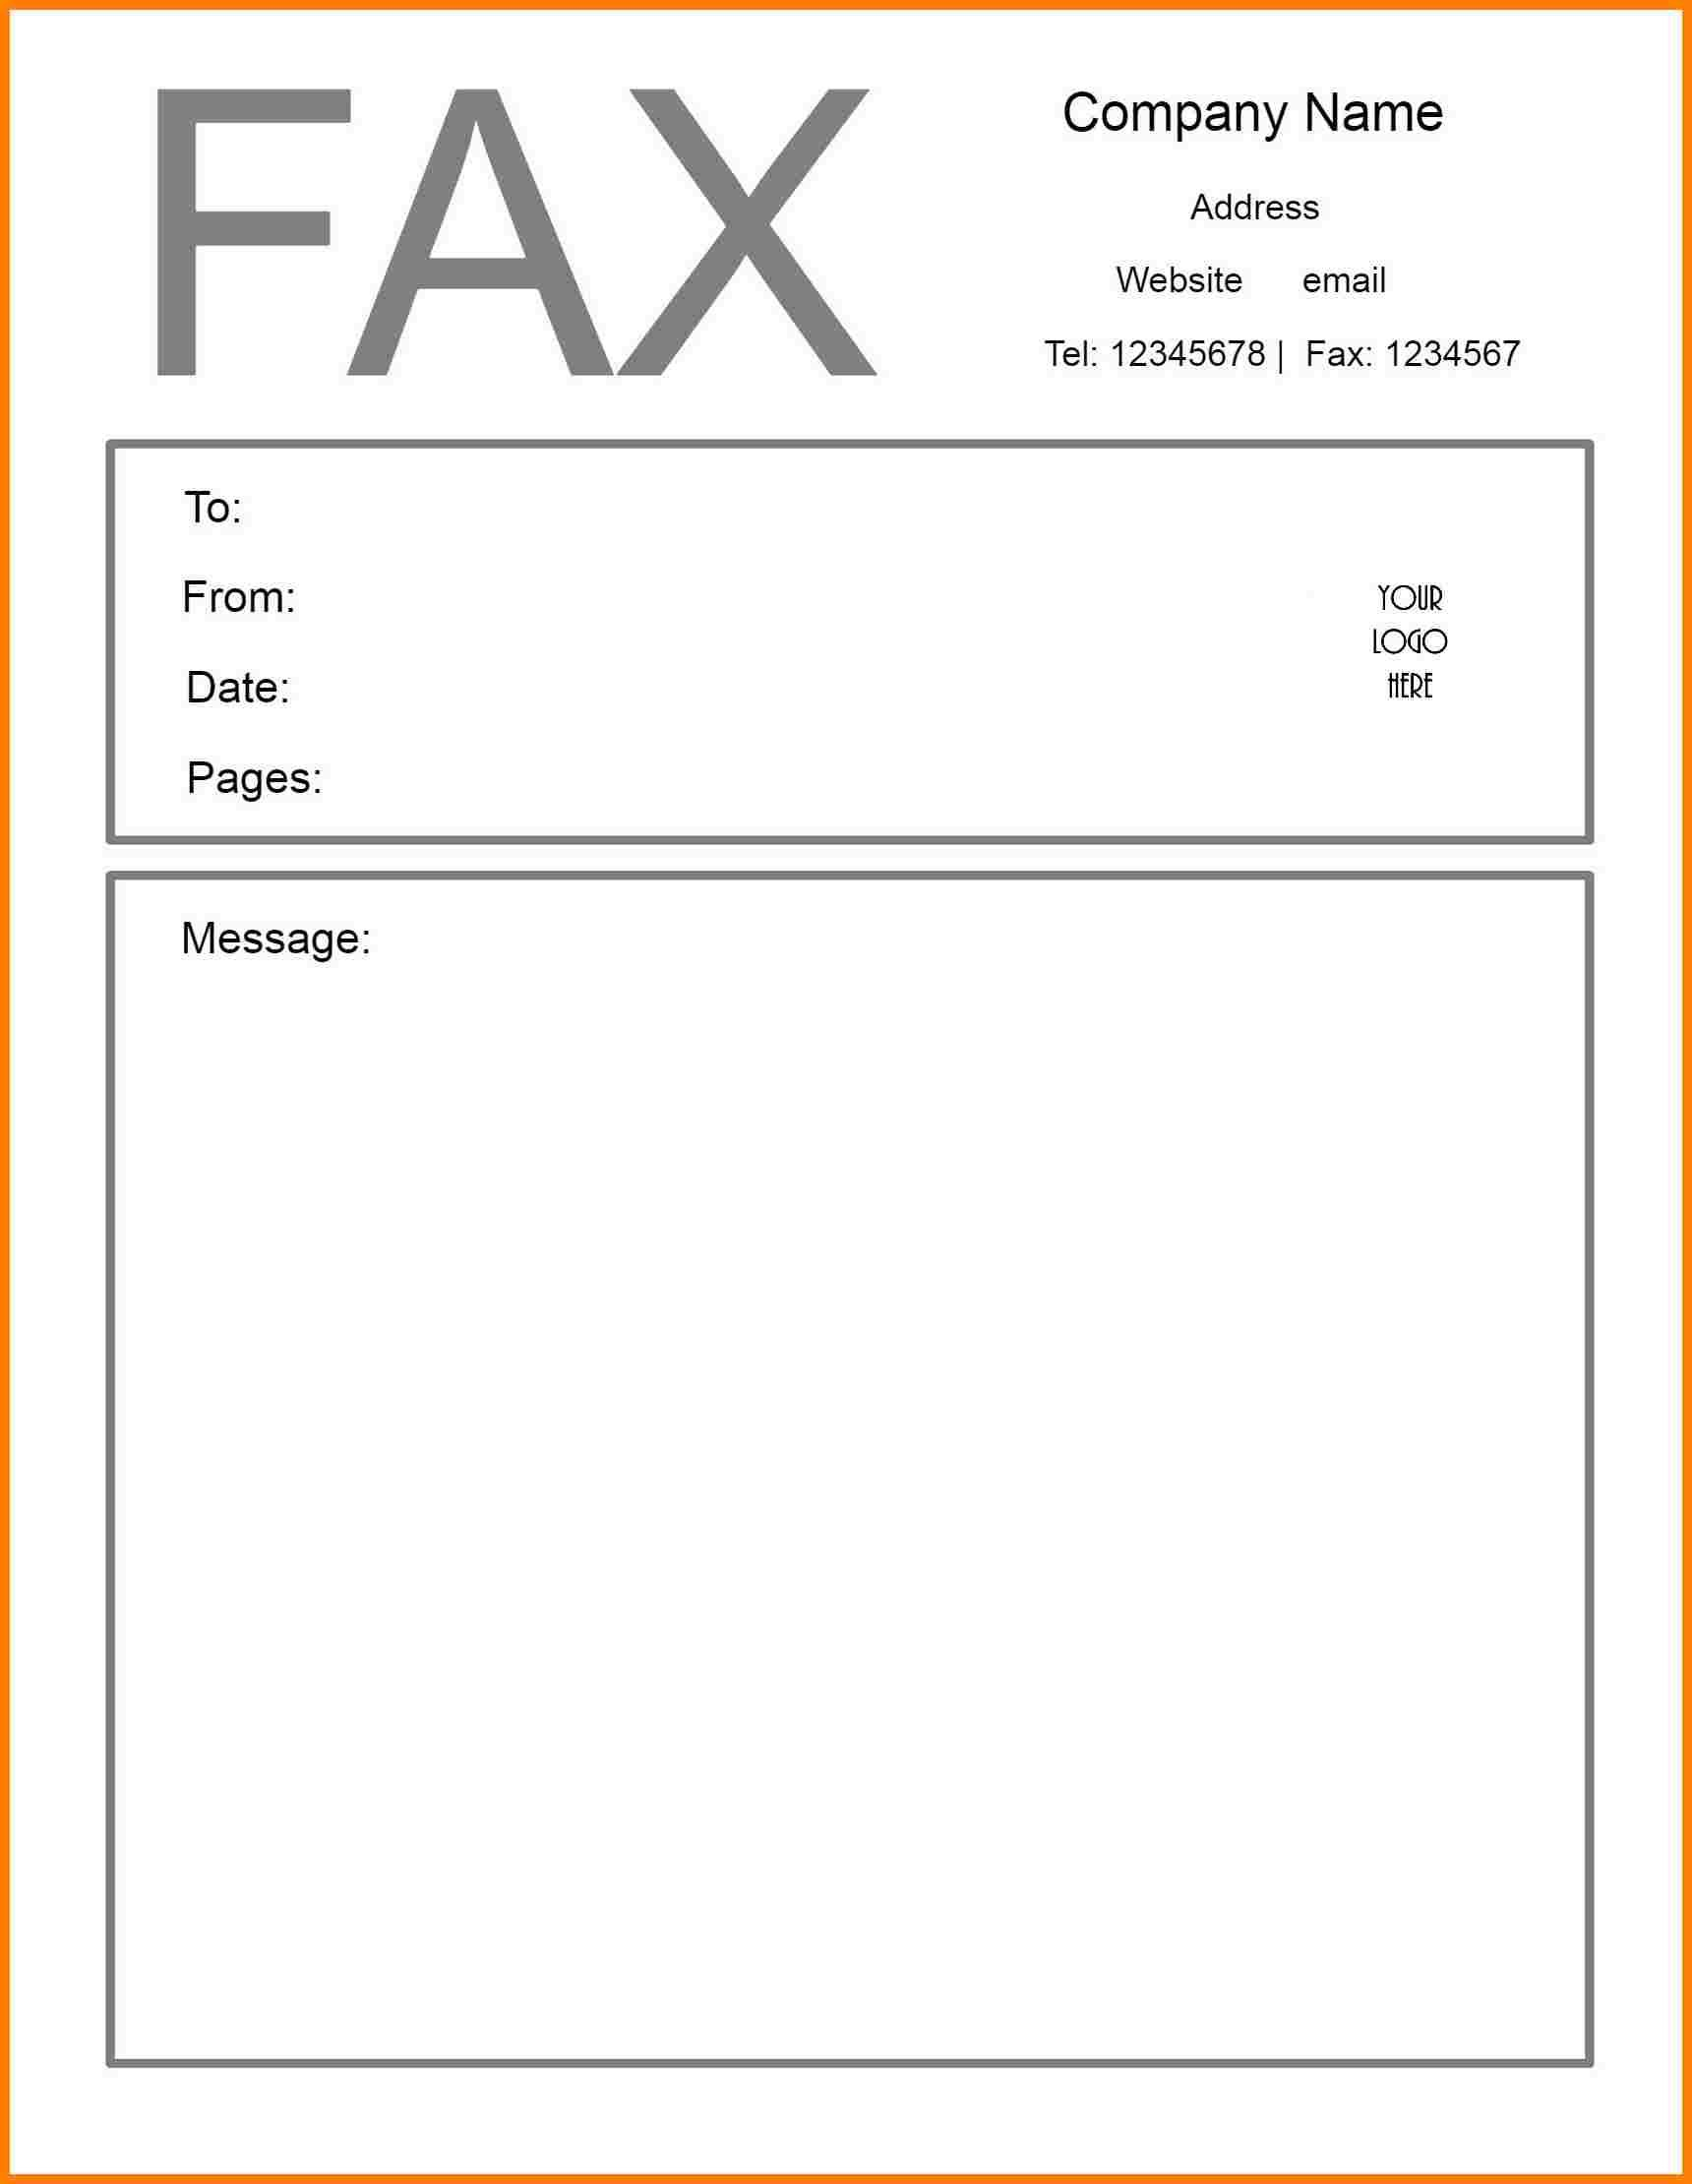 Printable Fax Cover Sheet Confidential Cover Sheet Template Fax Cover Sheet Cover Page Template Word Pdf fax cover sheet fillable